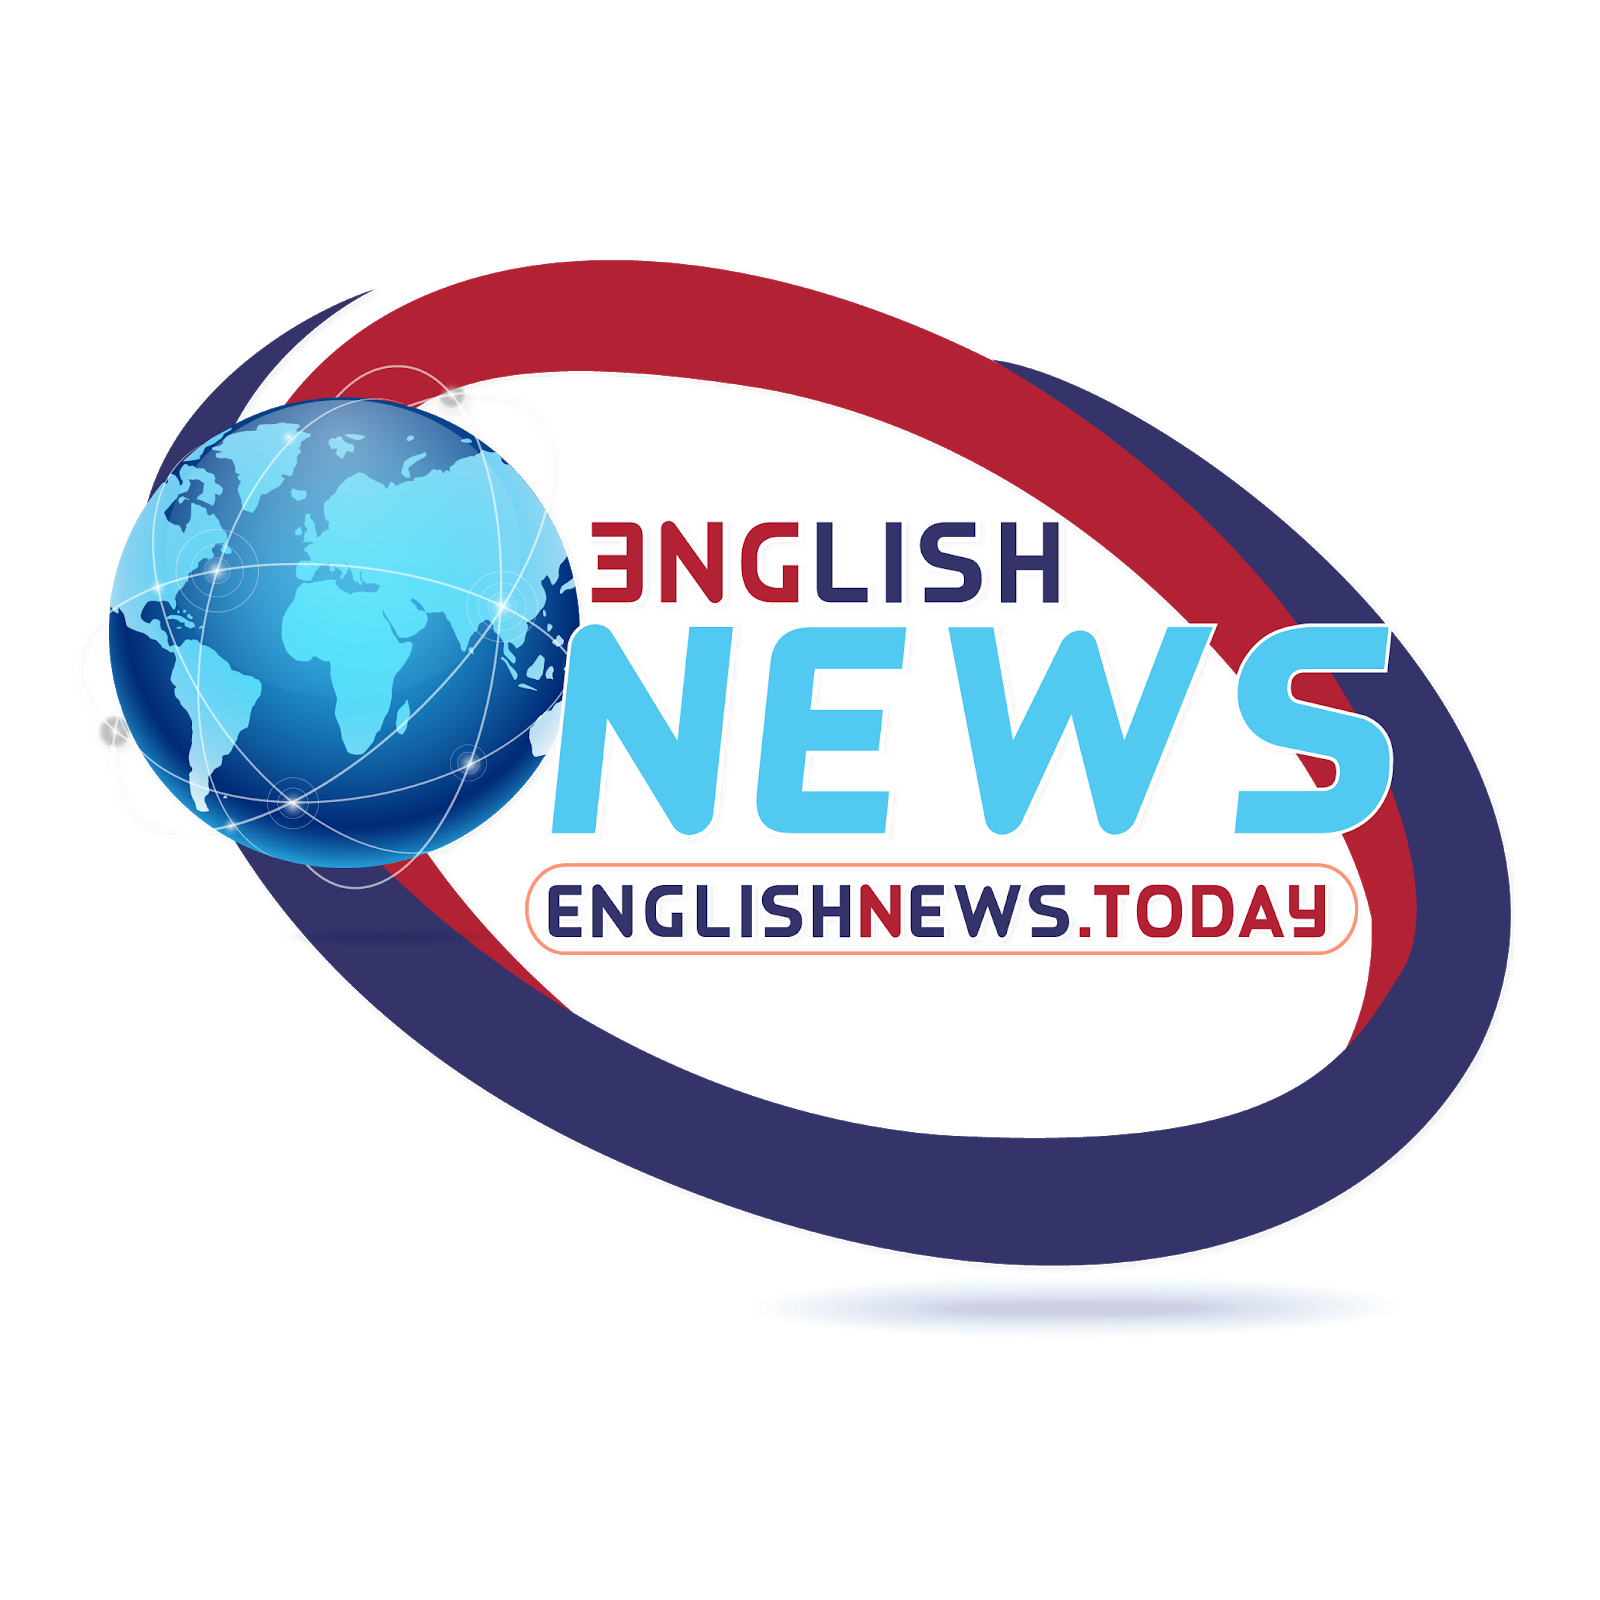 English News Today